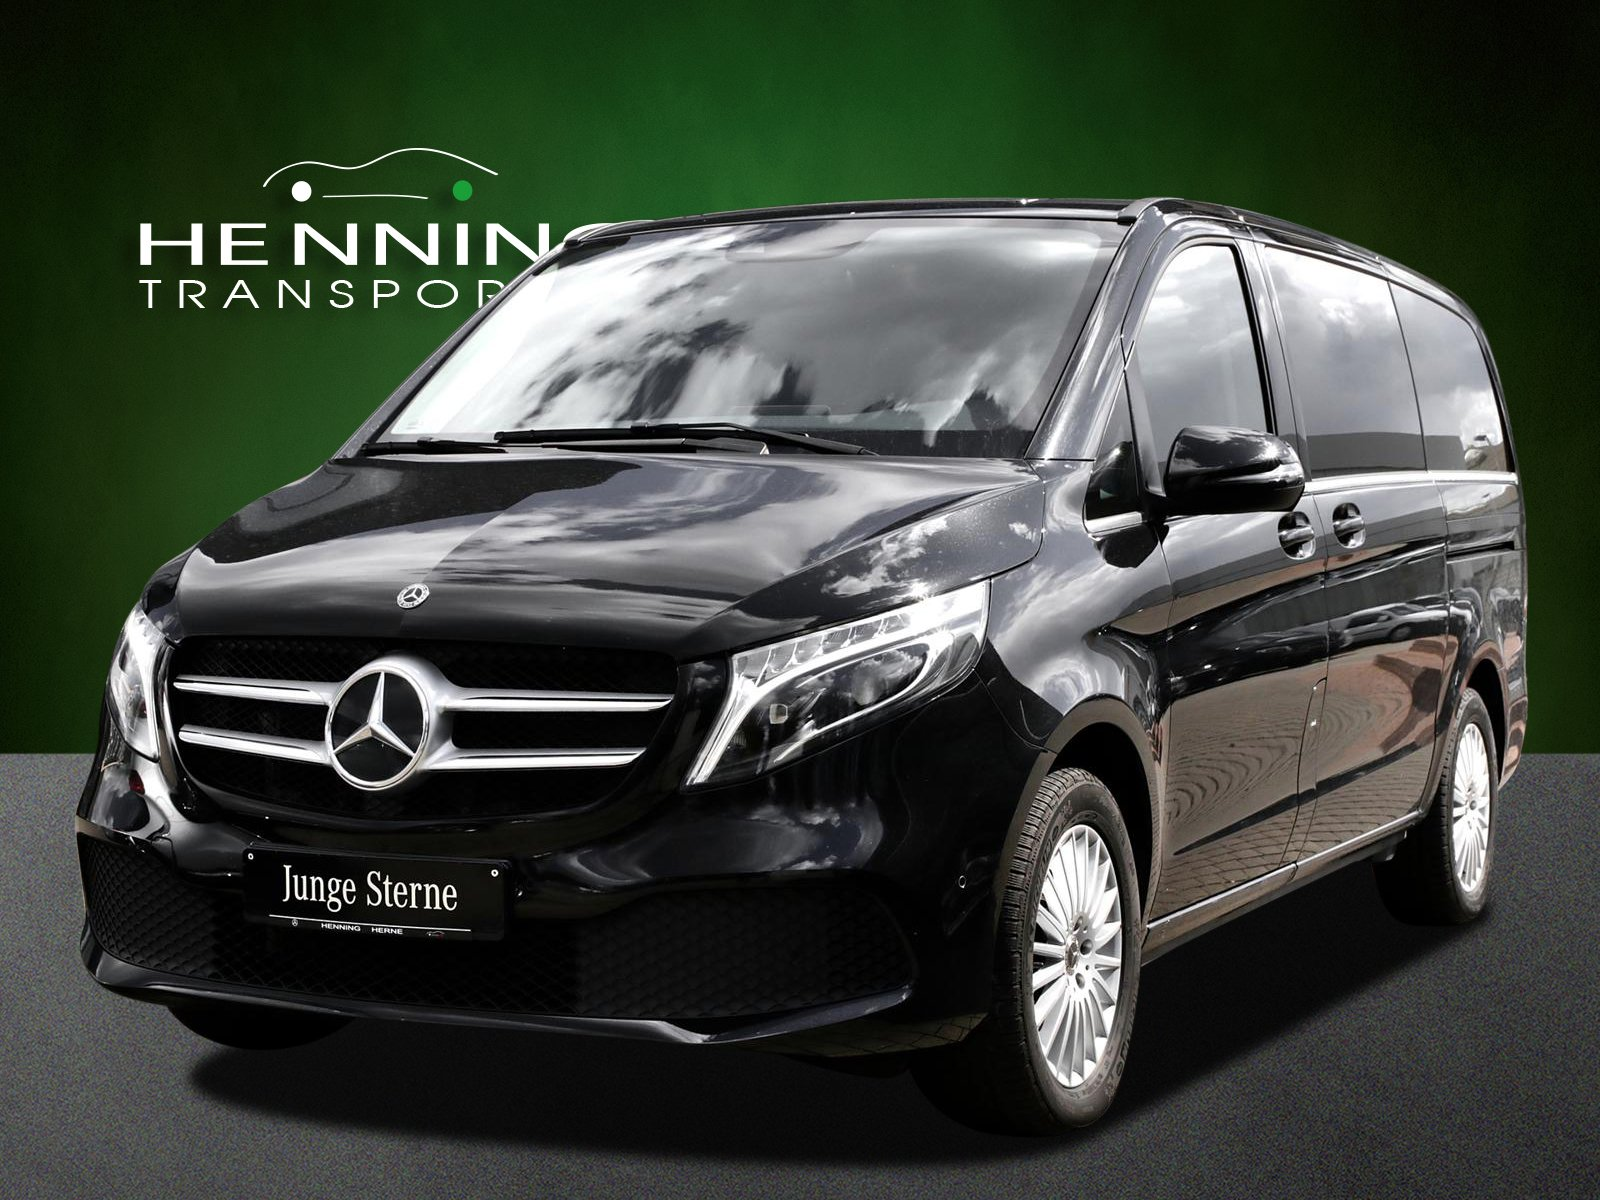 MERCEDES-BENZ 300 V d 4MATIC AVANTGARDE Lang